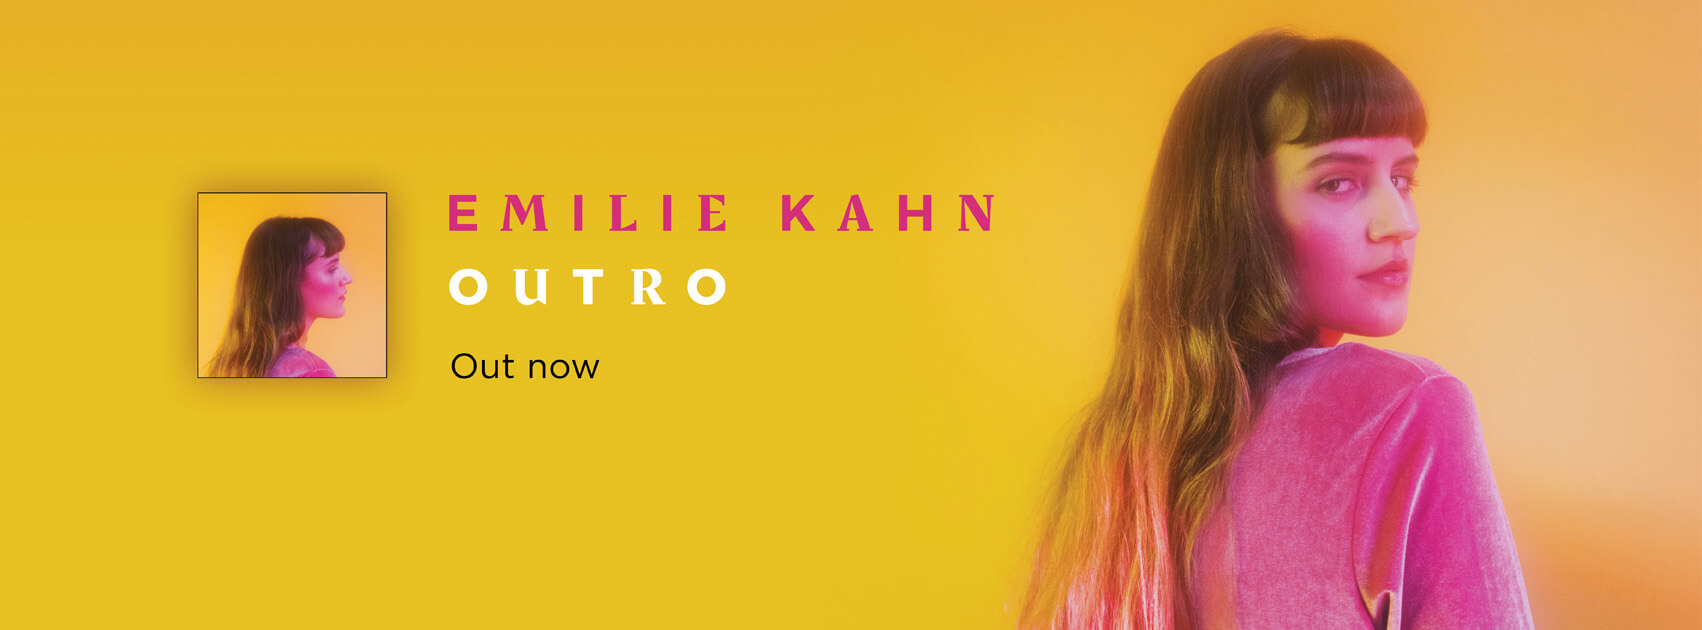 Emilie Kahn Outro out now